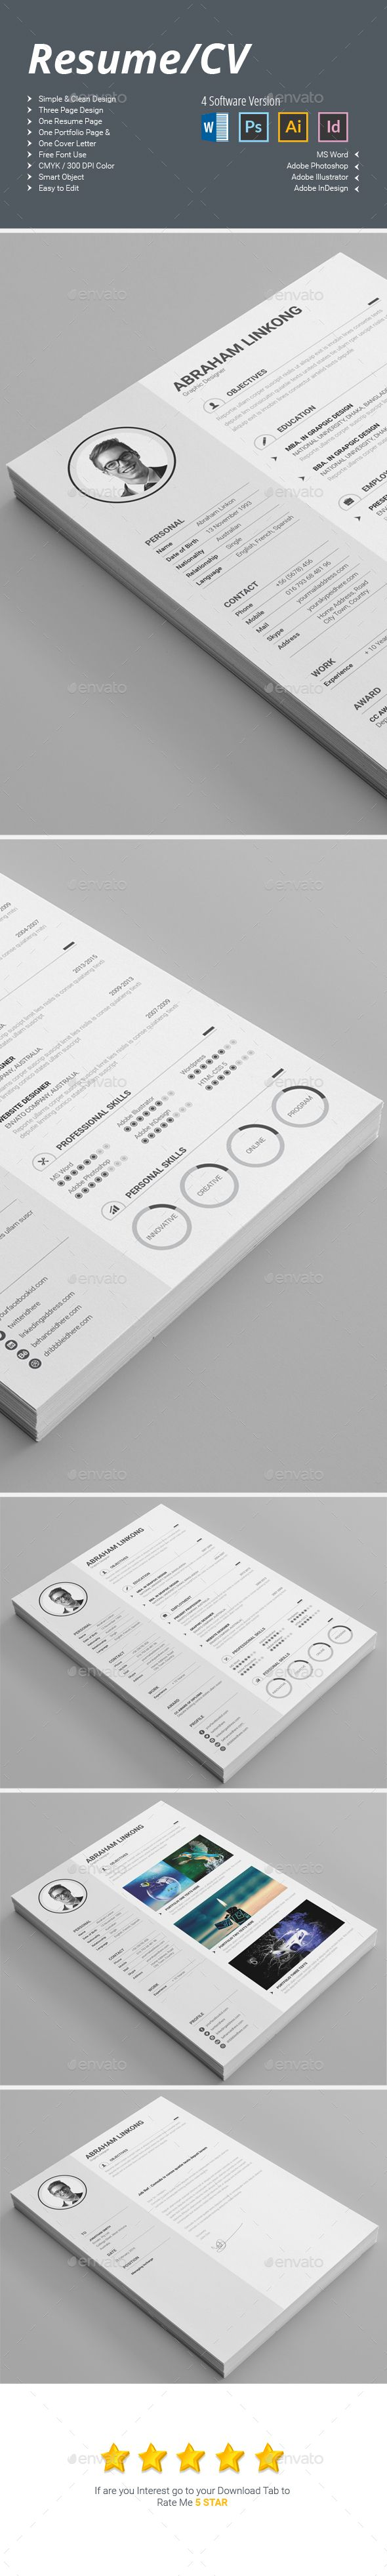 best ideas about cv template cv resume cv template here graphicriver net